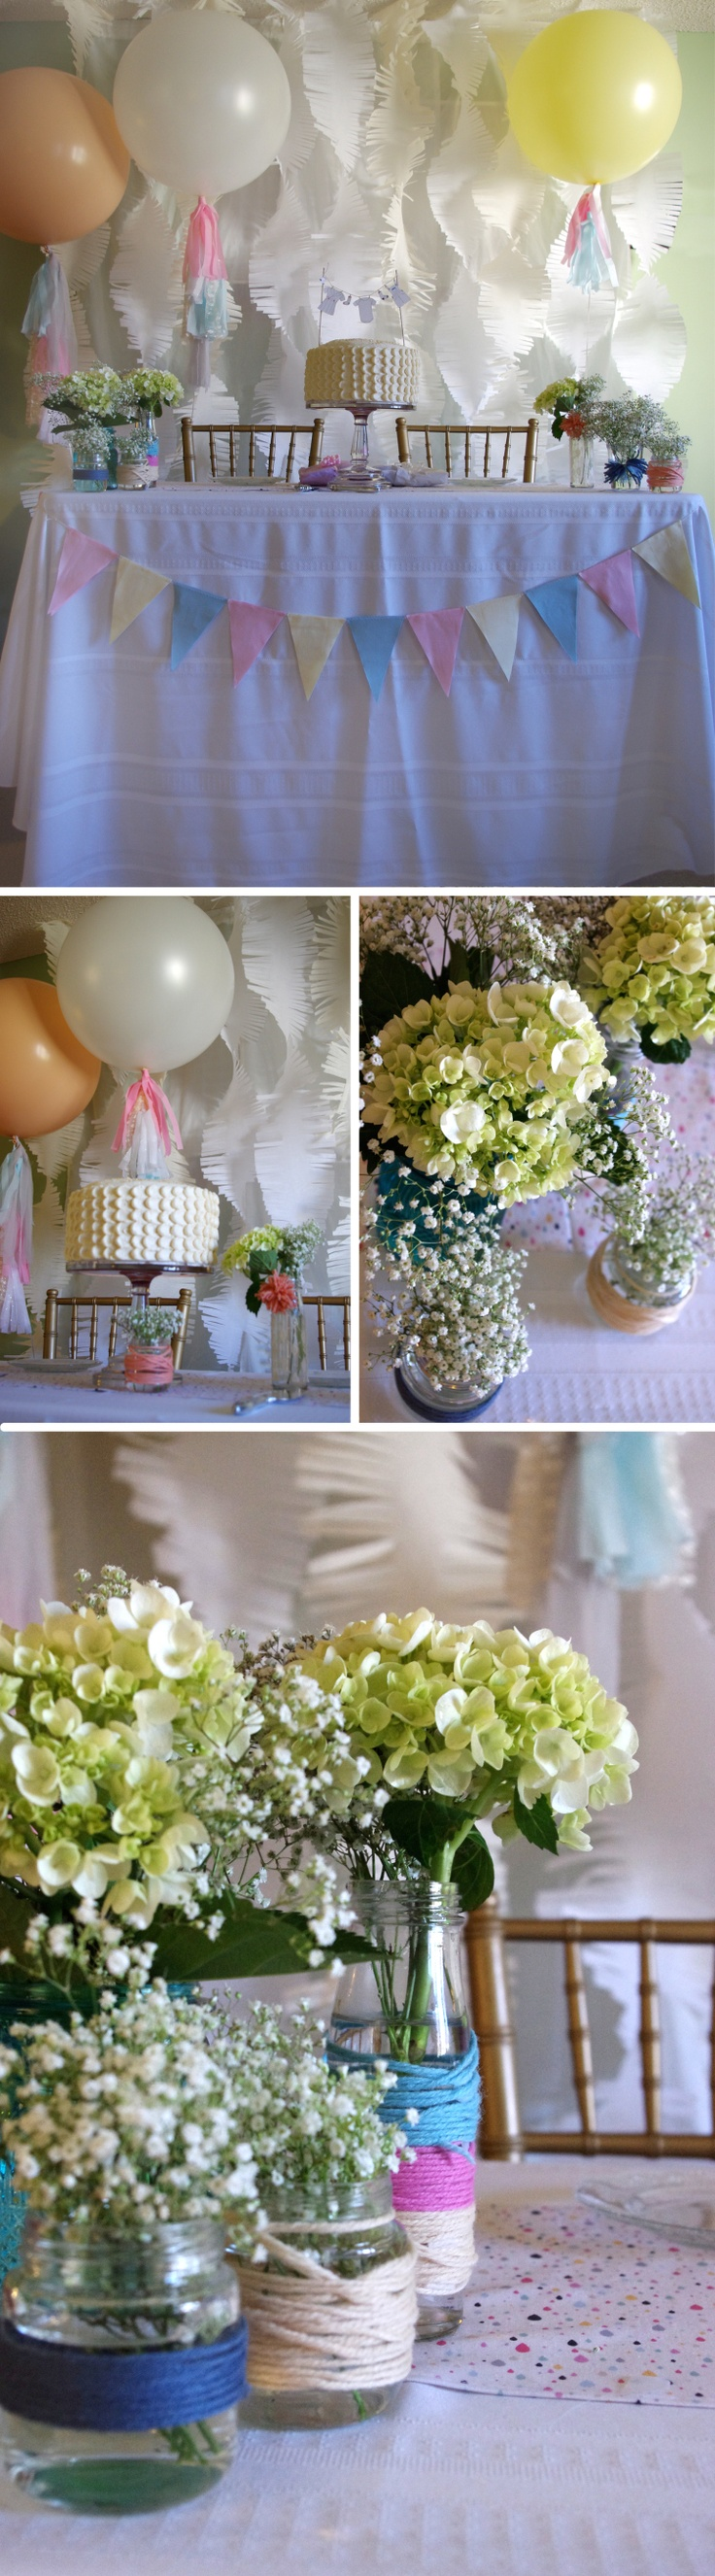 19 best My Gender Reveal Party images on Pinterest